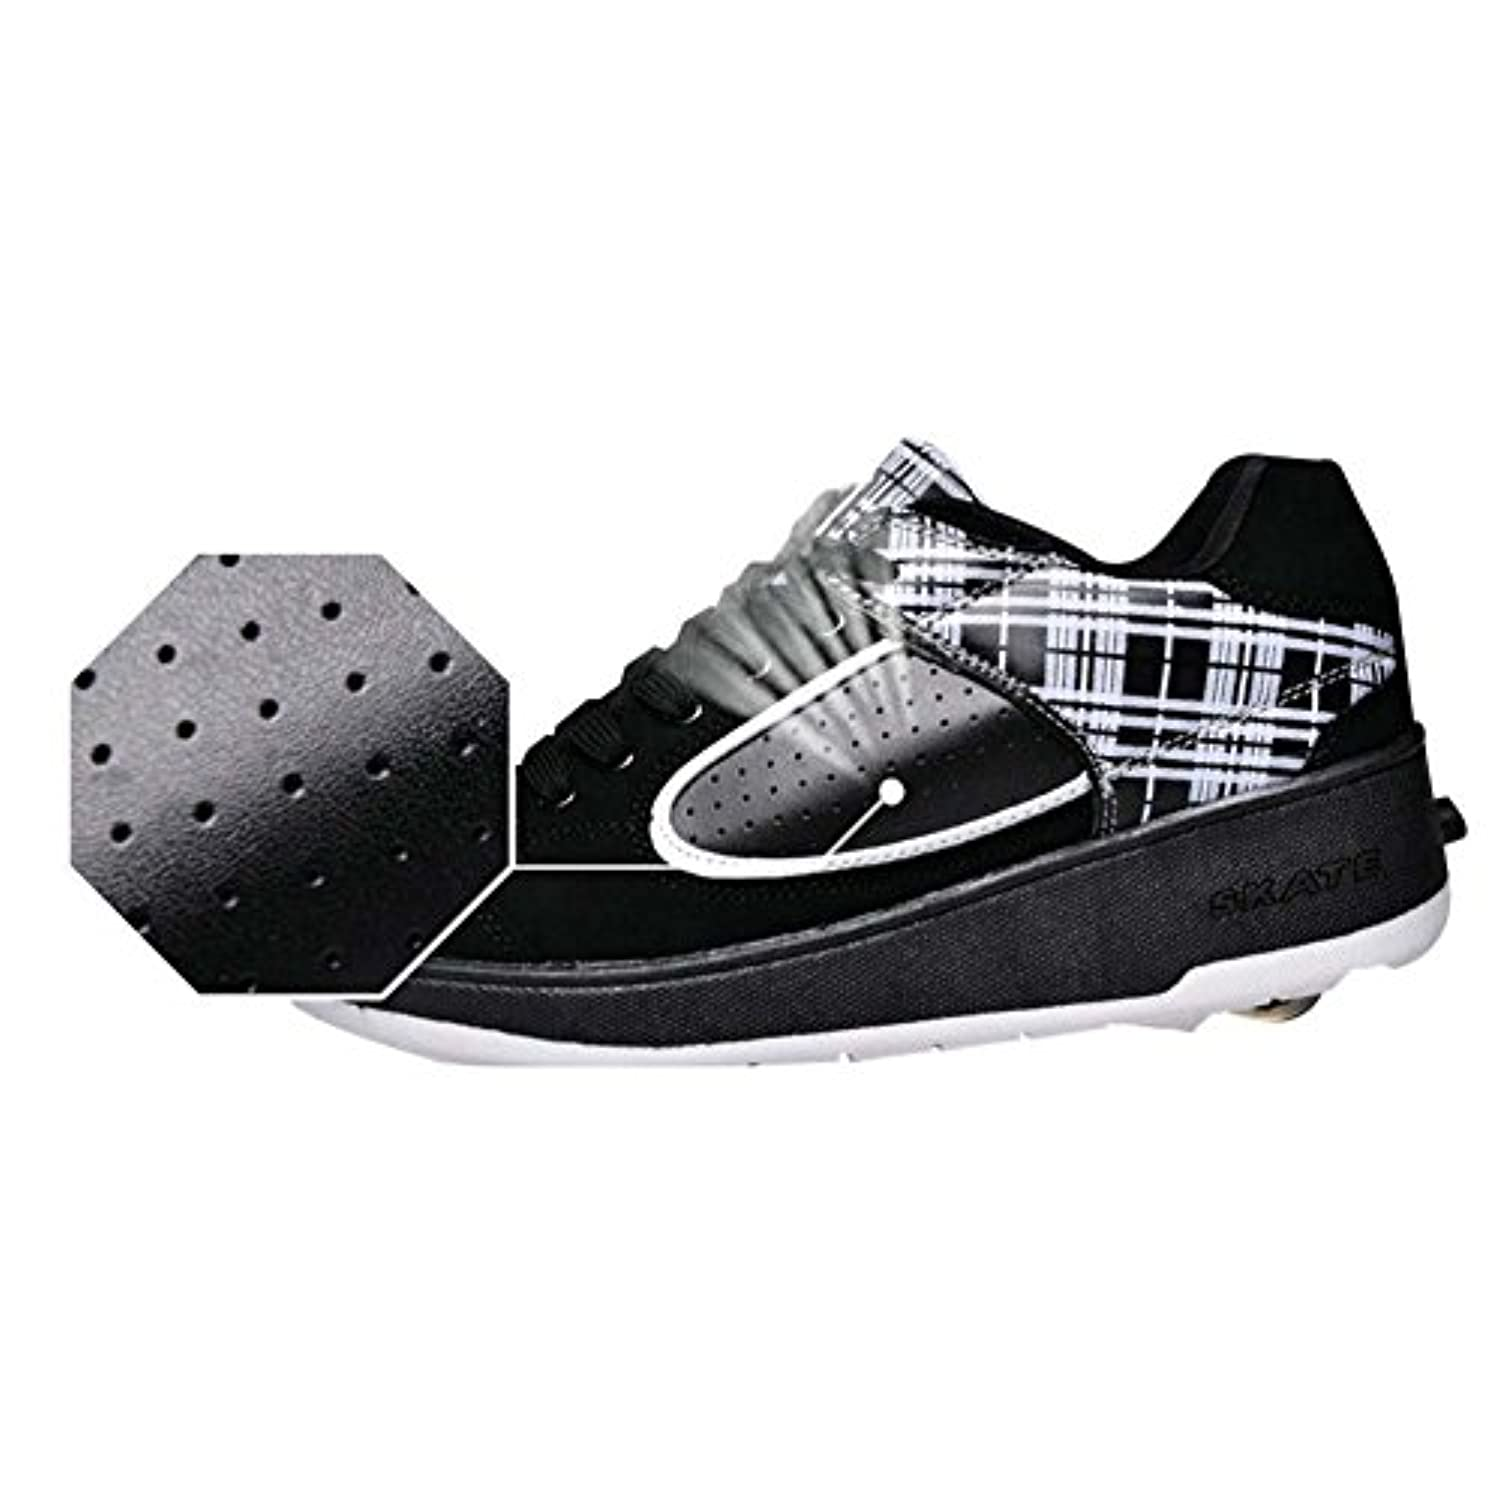 Retractable Child Girls Adult Boys Wheel Roller Skate Shoes with/without LED